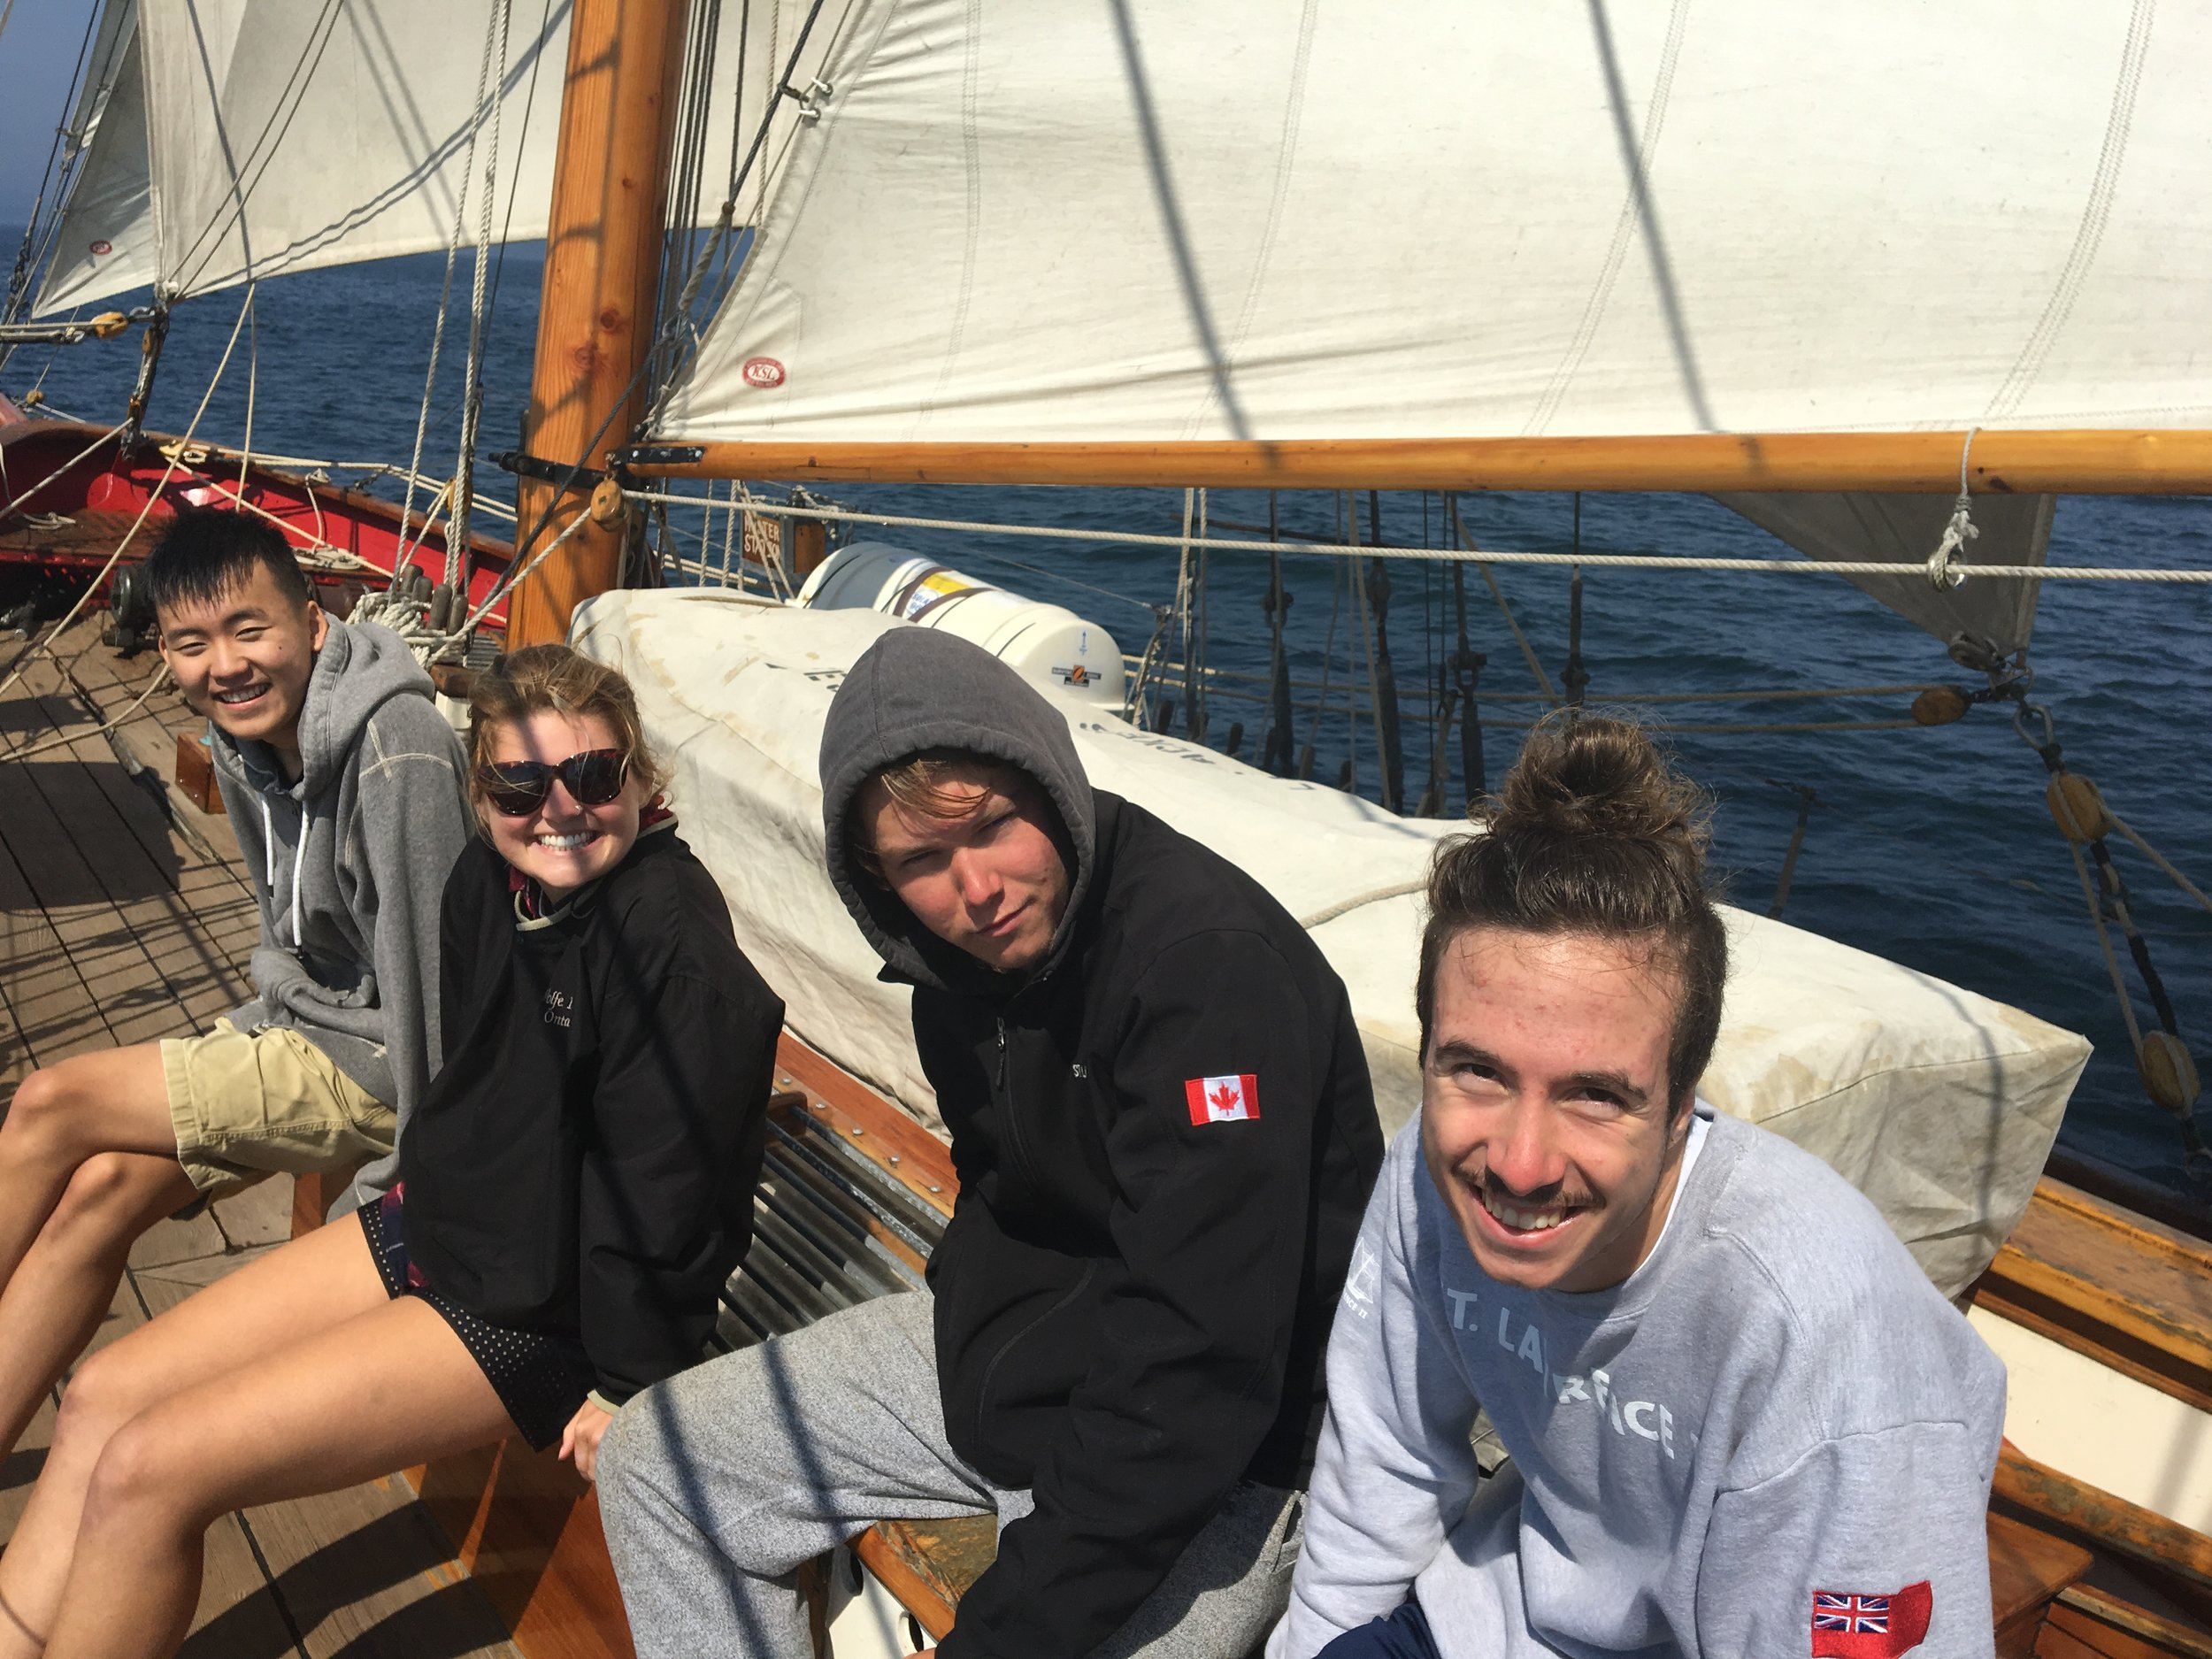 """The entire adventure was amazing, so it's hard to choose just one highlight, but a few that come to mind are how awesome it was when we put up the sails for the first time, the amazing scenery, and meeting the crew."" - - 2016 Trainee"